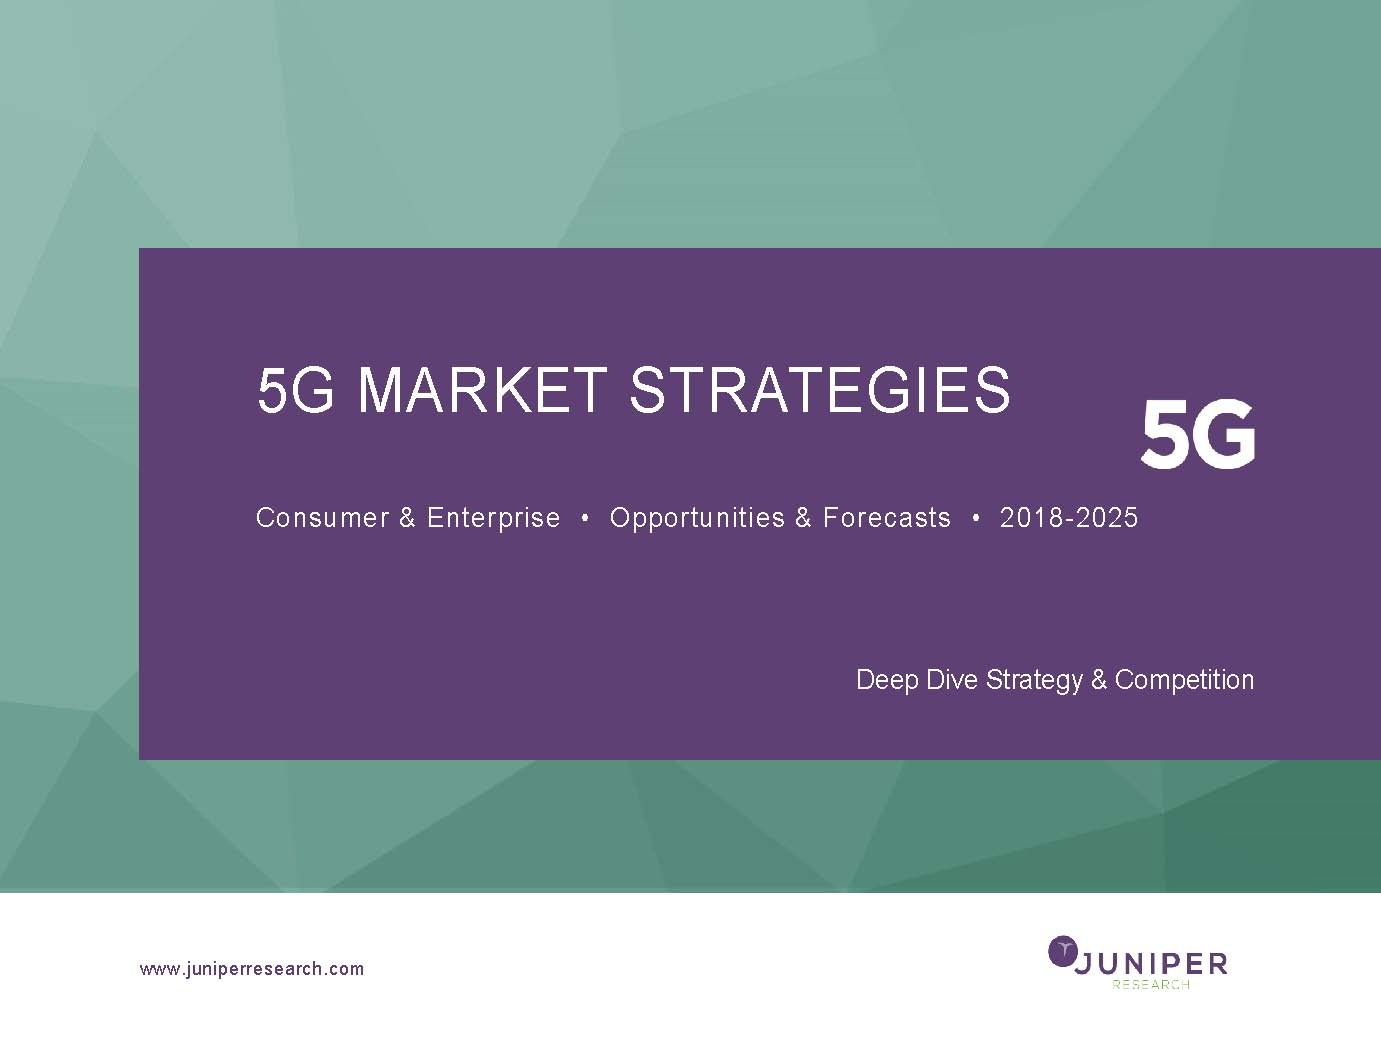 5G Market Strategies: Deep Dive Strategy & Competition 2018-2025